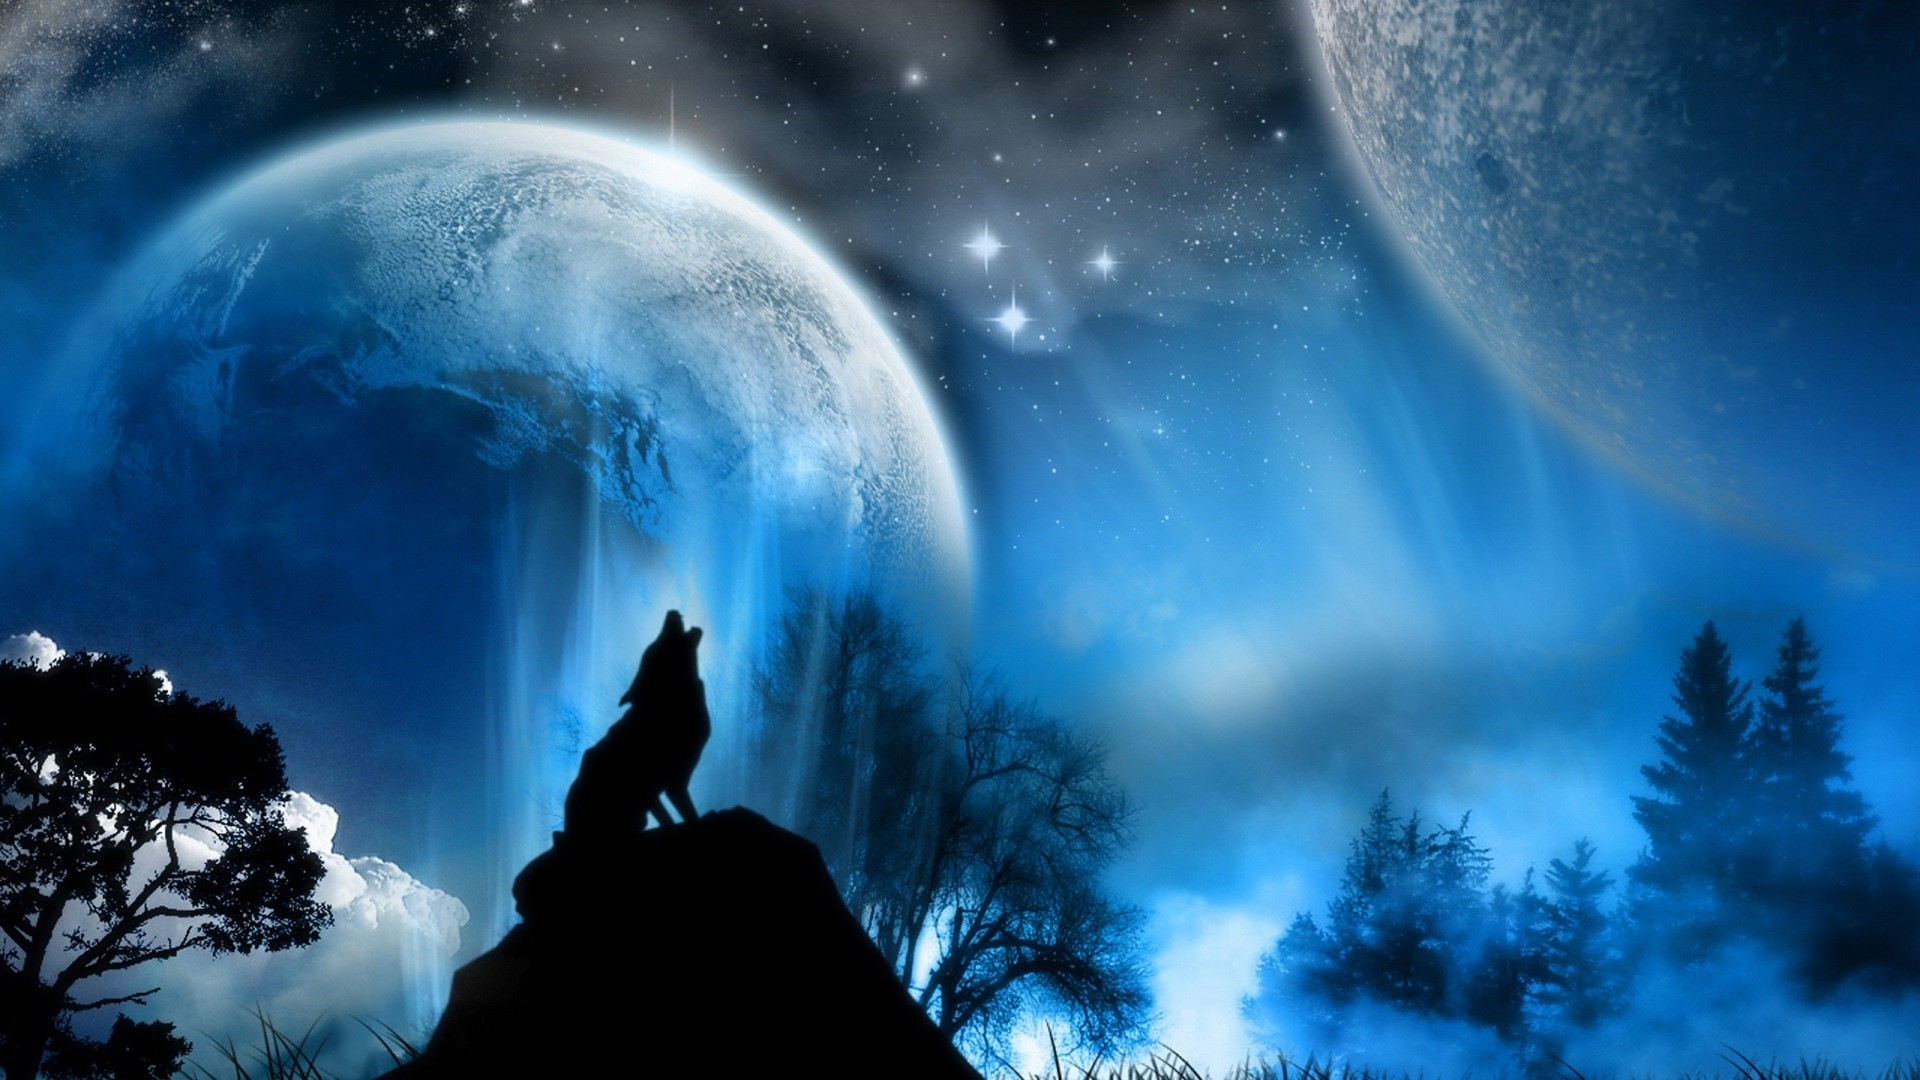 Wolfpack Wallpaper Upstore Wolf Howling At The Moon Background 1920x1080 Wallpaper Teahub Io